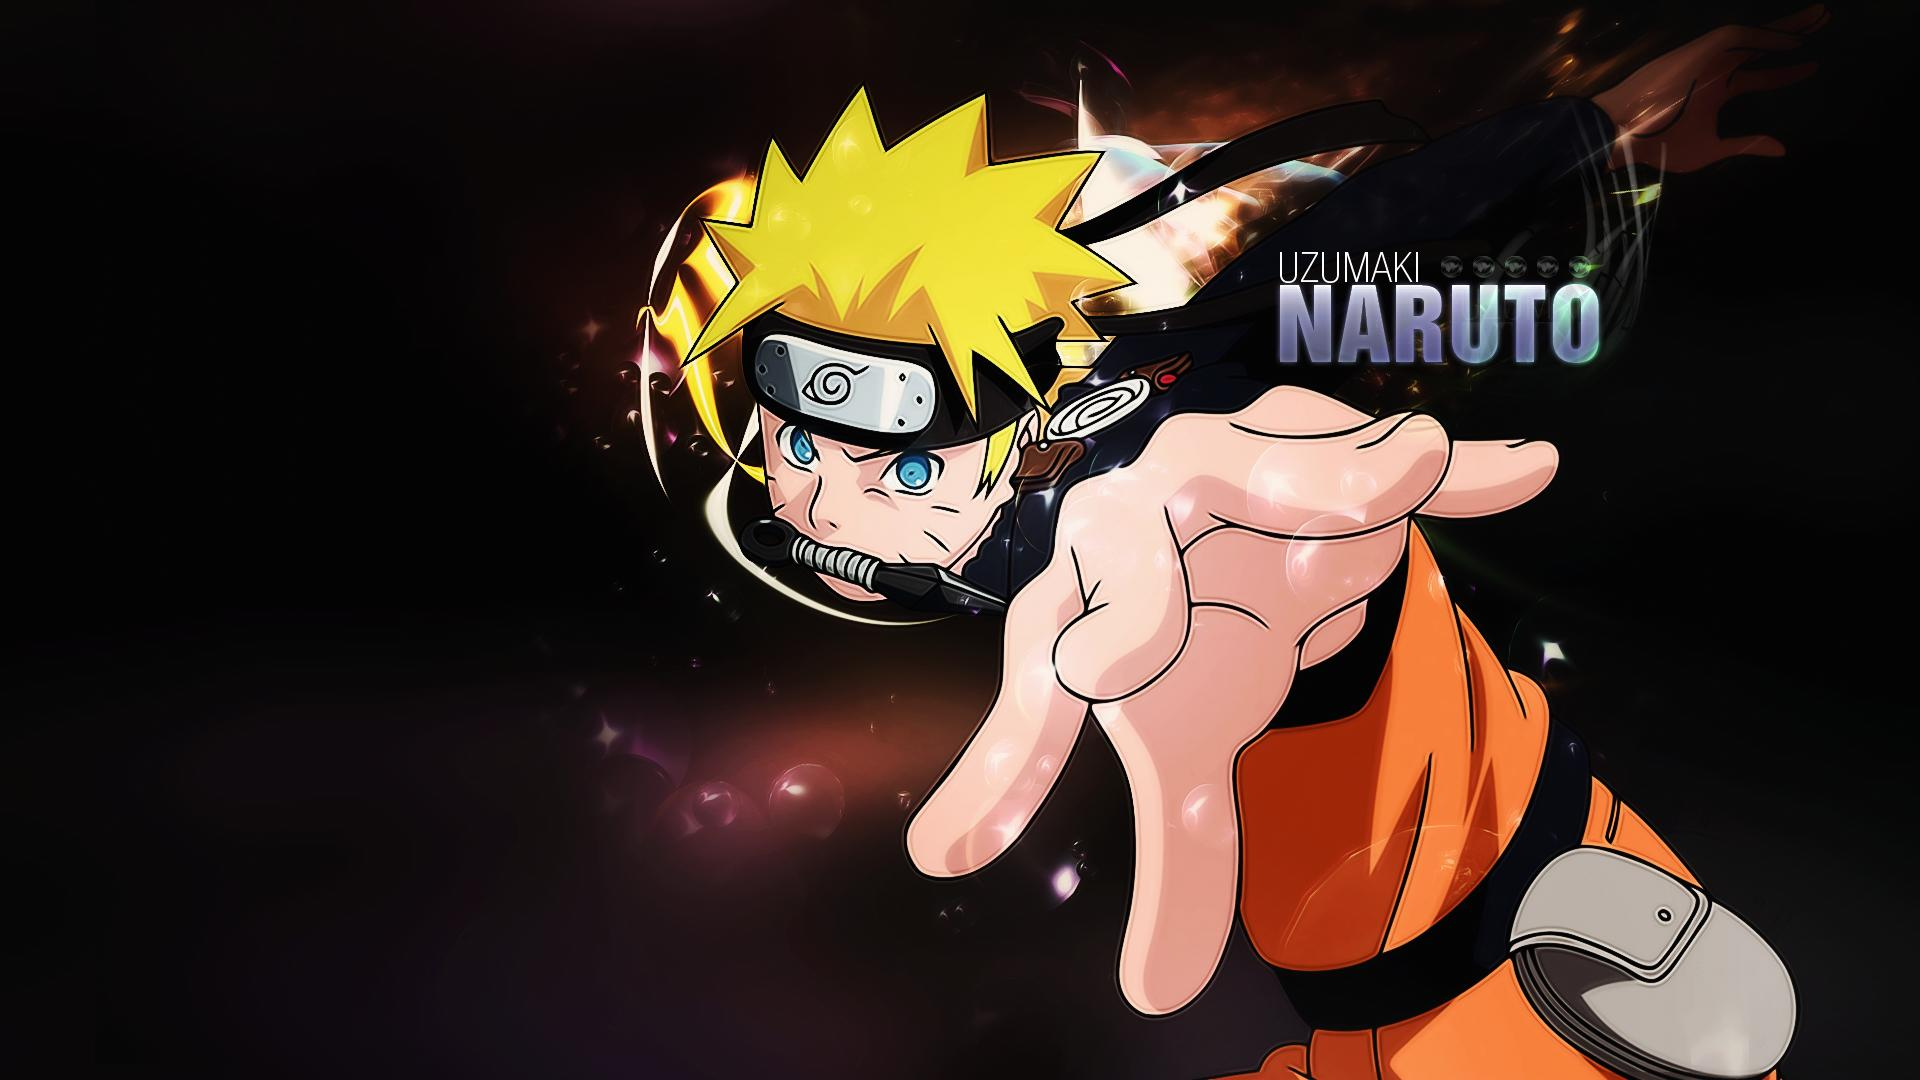 naruto uzumaki shippuden wallpapers hd